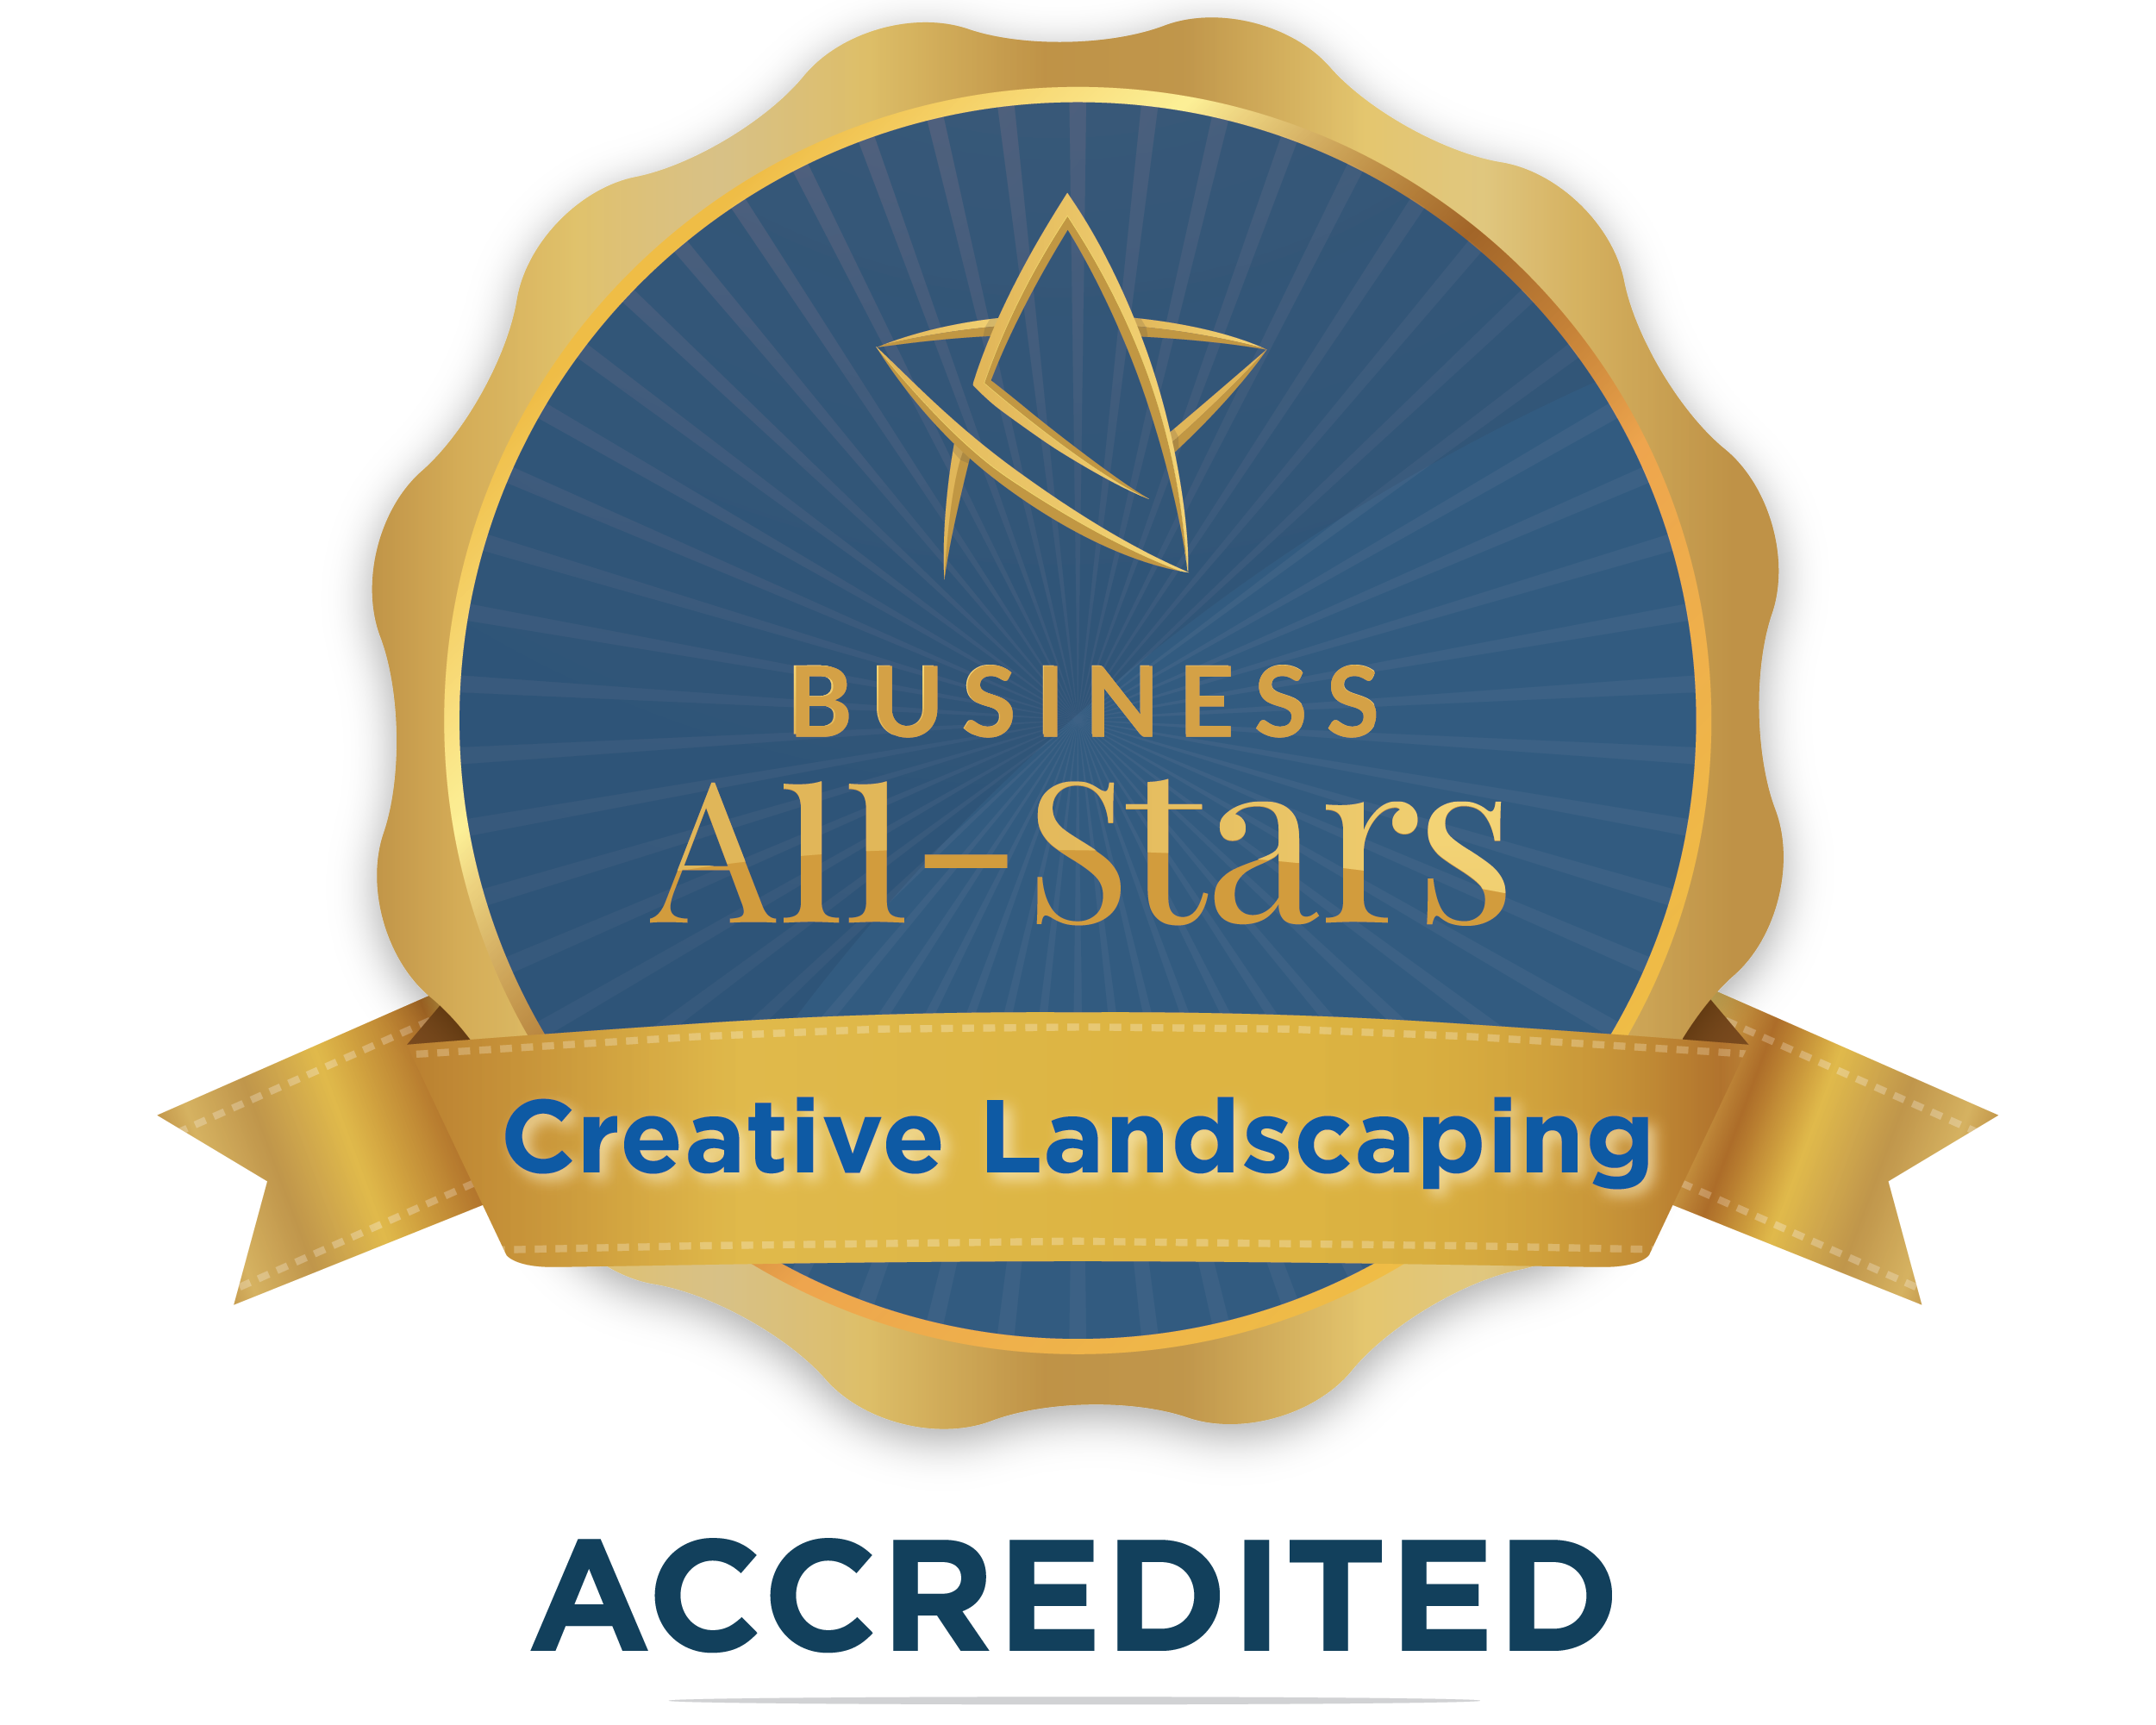 Creative Landscaping Works - Business All-Stars Accreditation